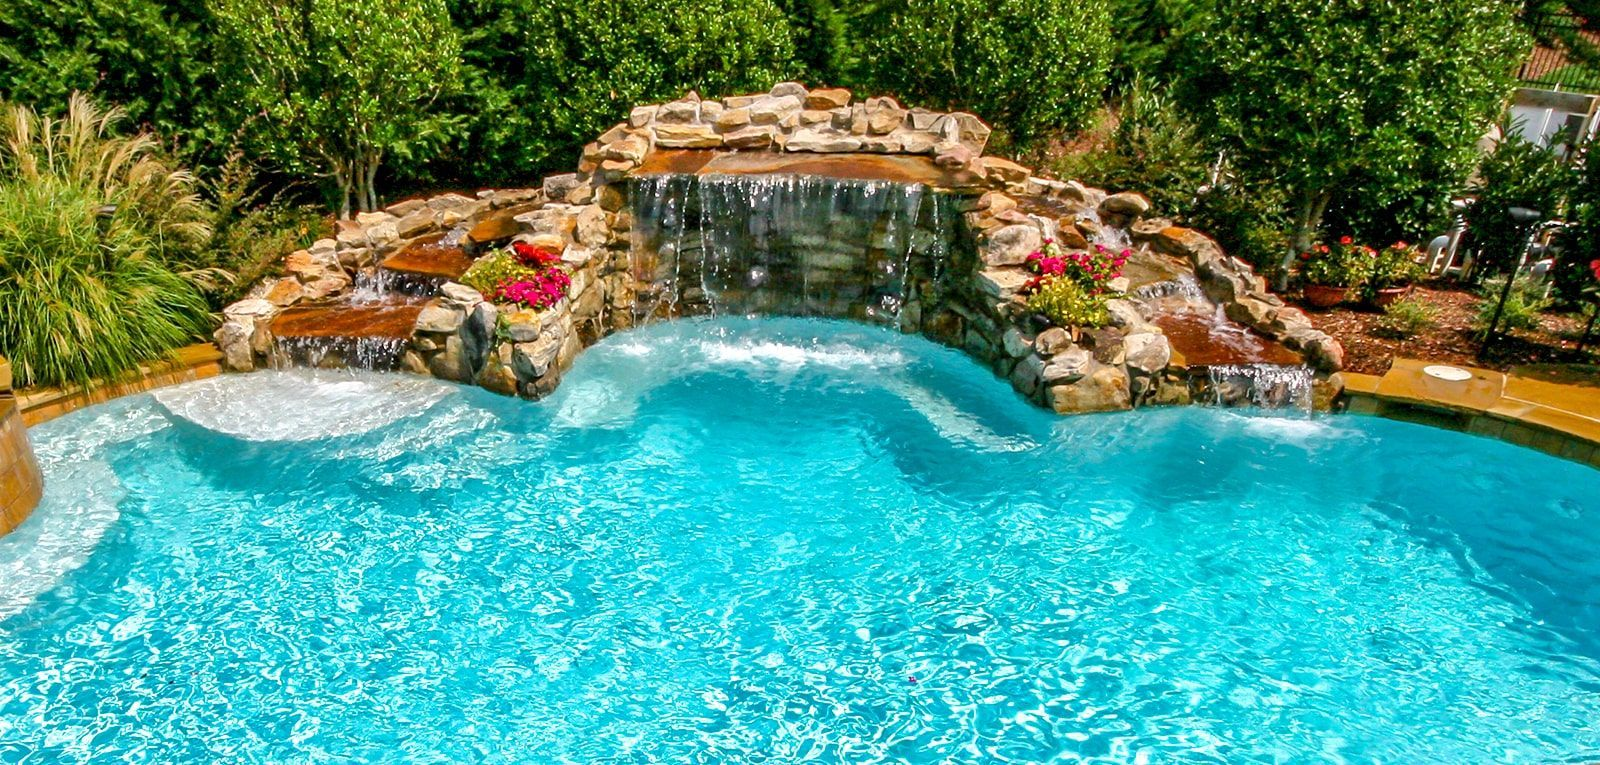 Swimming Pool Rock Waterfall Pictures Blue Haven Swimming Pools Backyard Inground Cool Swimming Pools Rock Waterfall